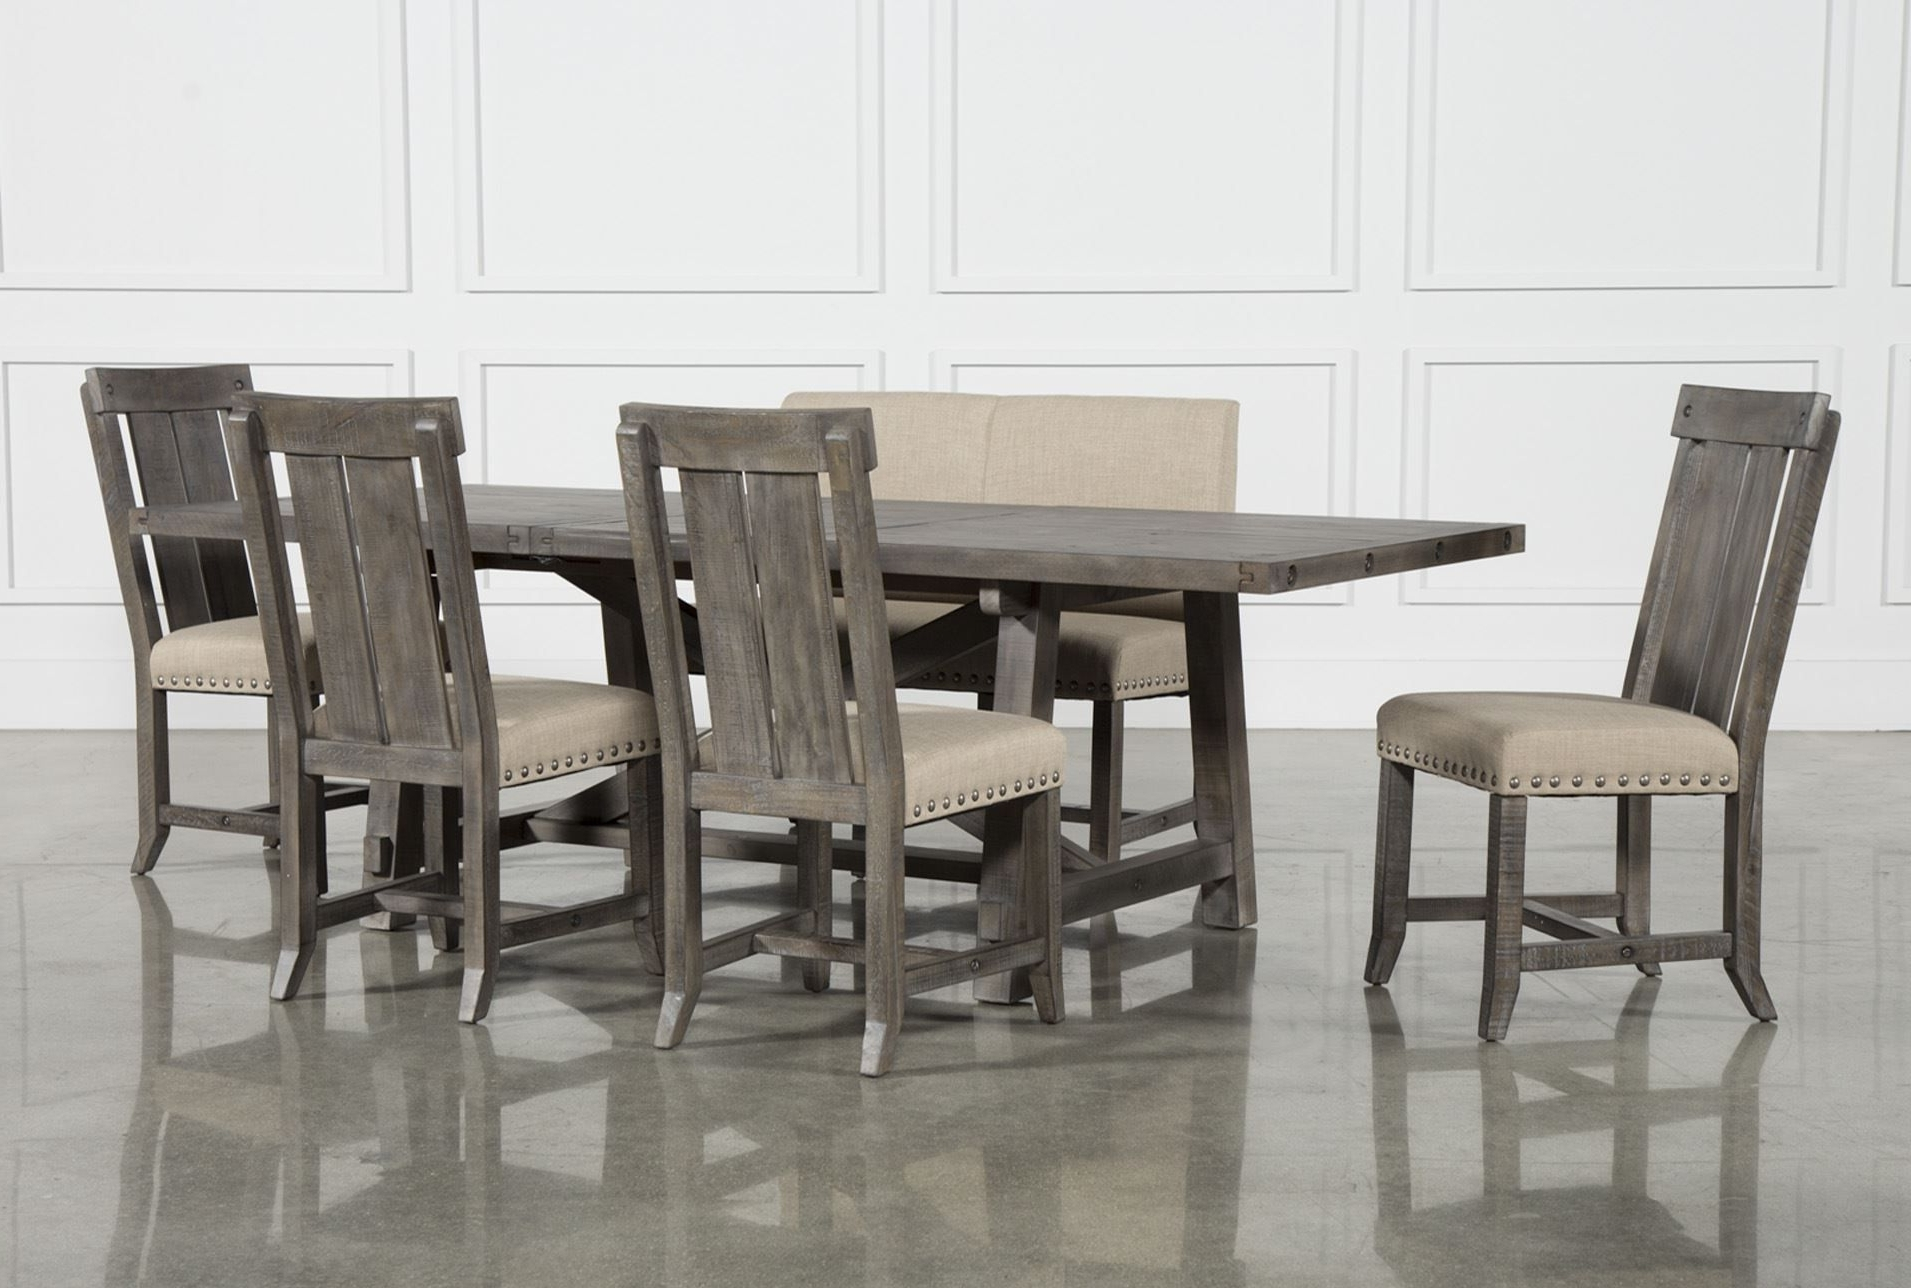 Norwood 7 Piece Rectangular Extension Dining Sets With Bench & Uph Side Chairs Within Fashionable Jaxon Grey 6 Piece Rectangle Extension Dining Set W/bench & Wood (View 17 of 25)